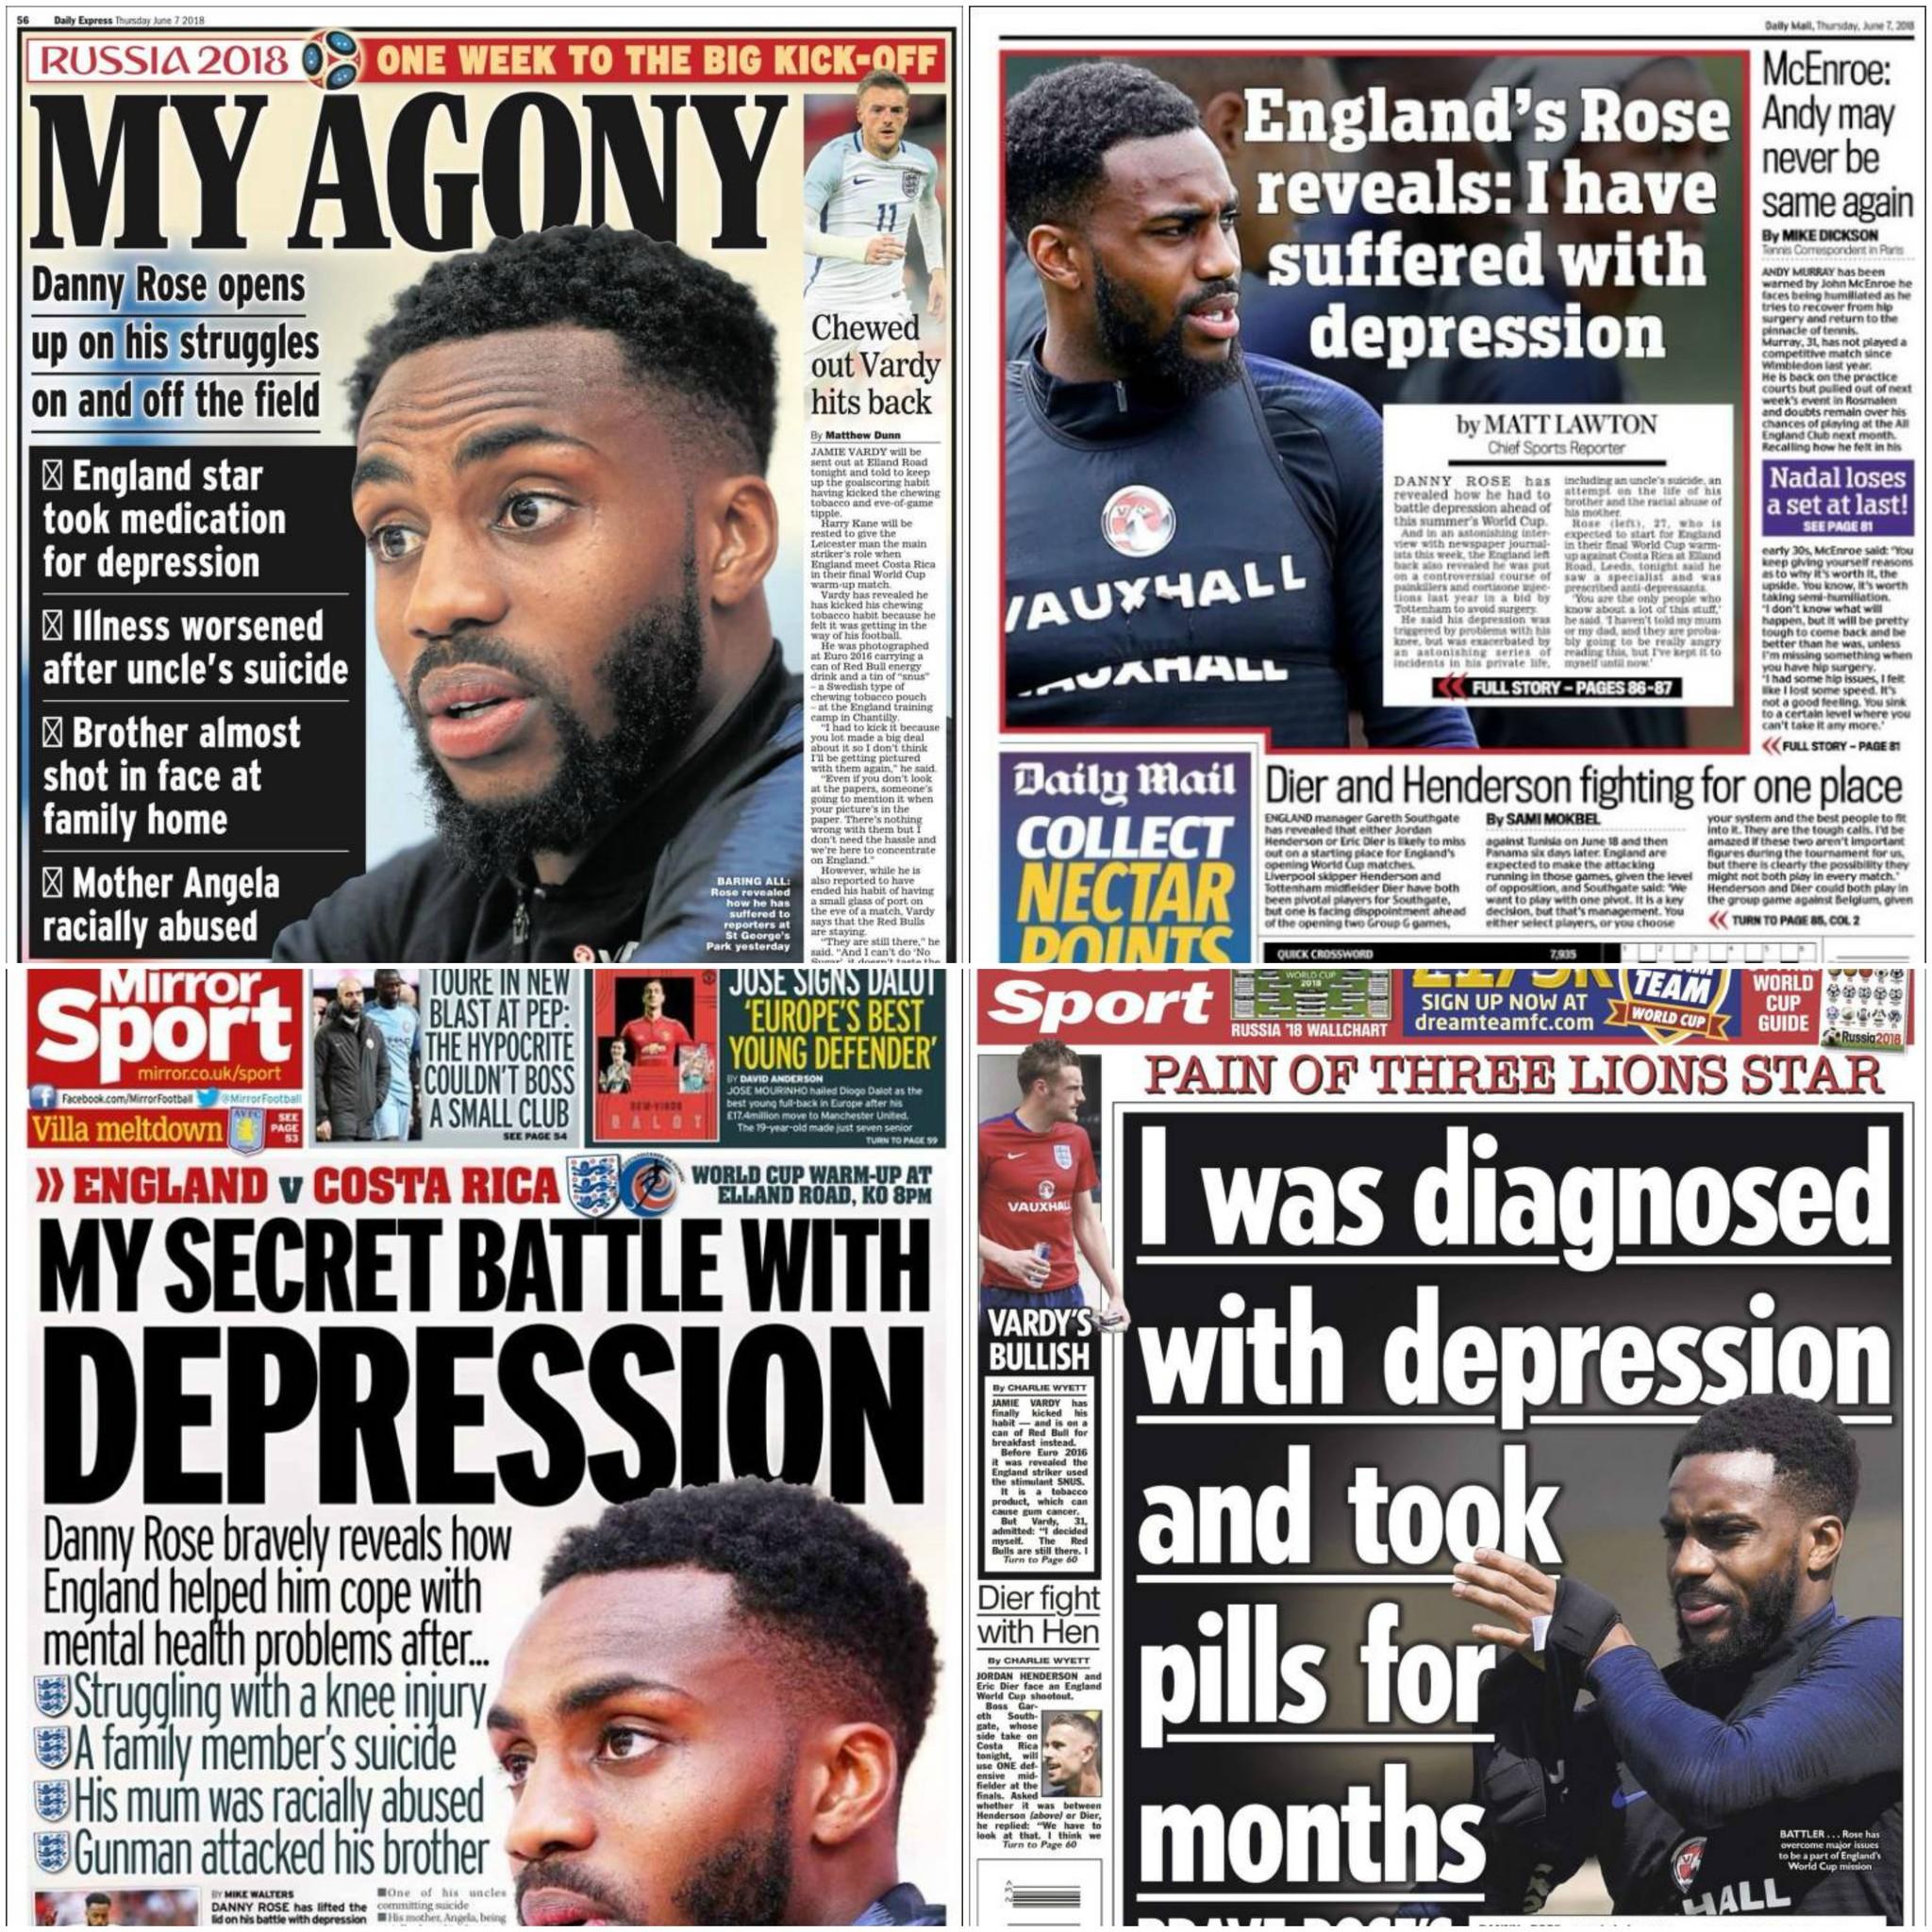 England full-back Danny Rose reveals the story behind battle with depression